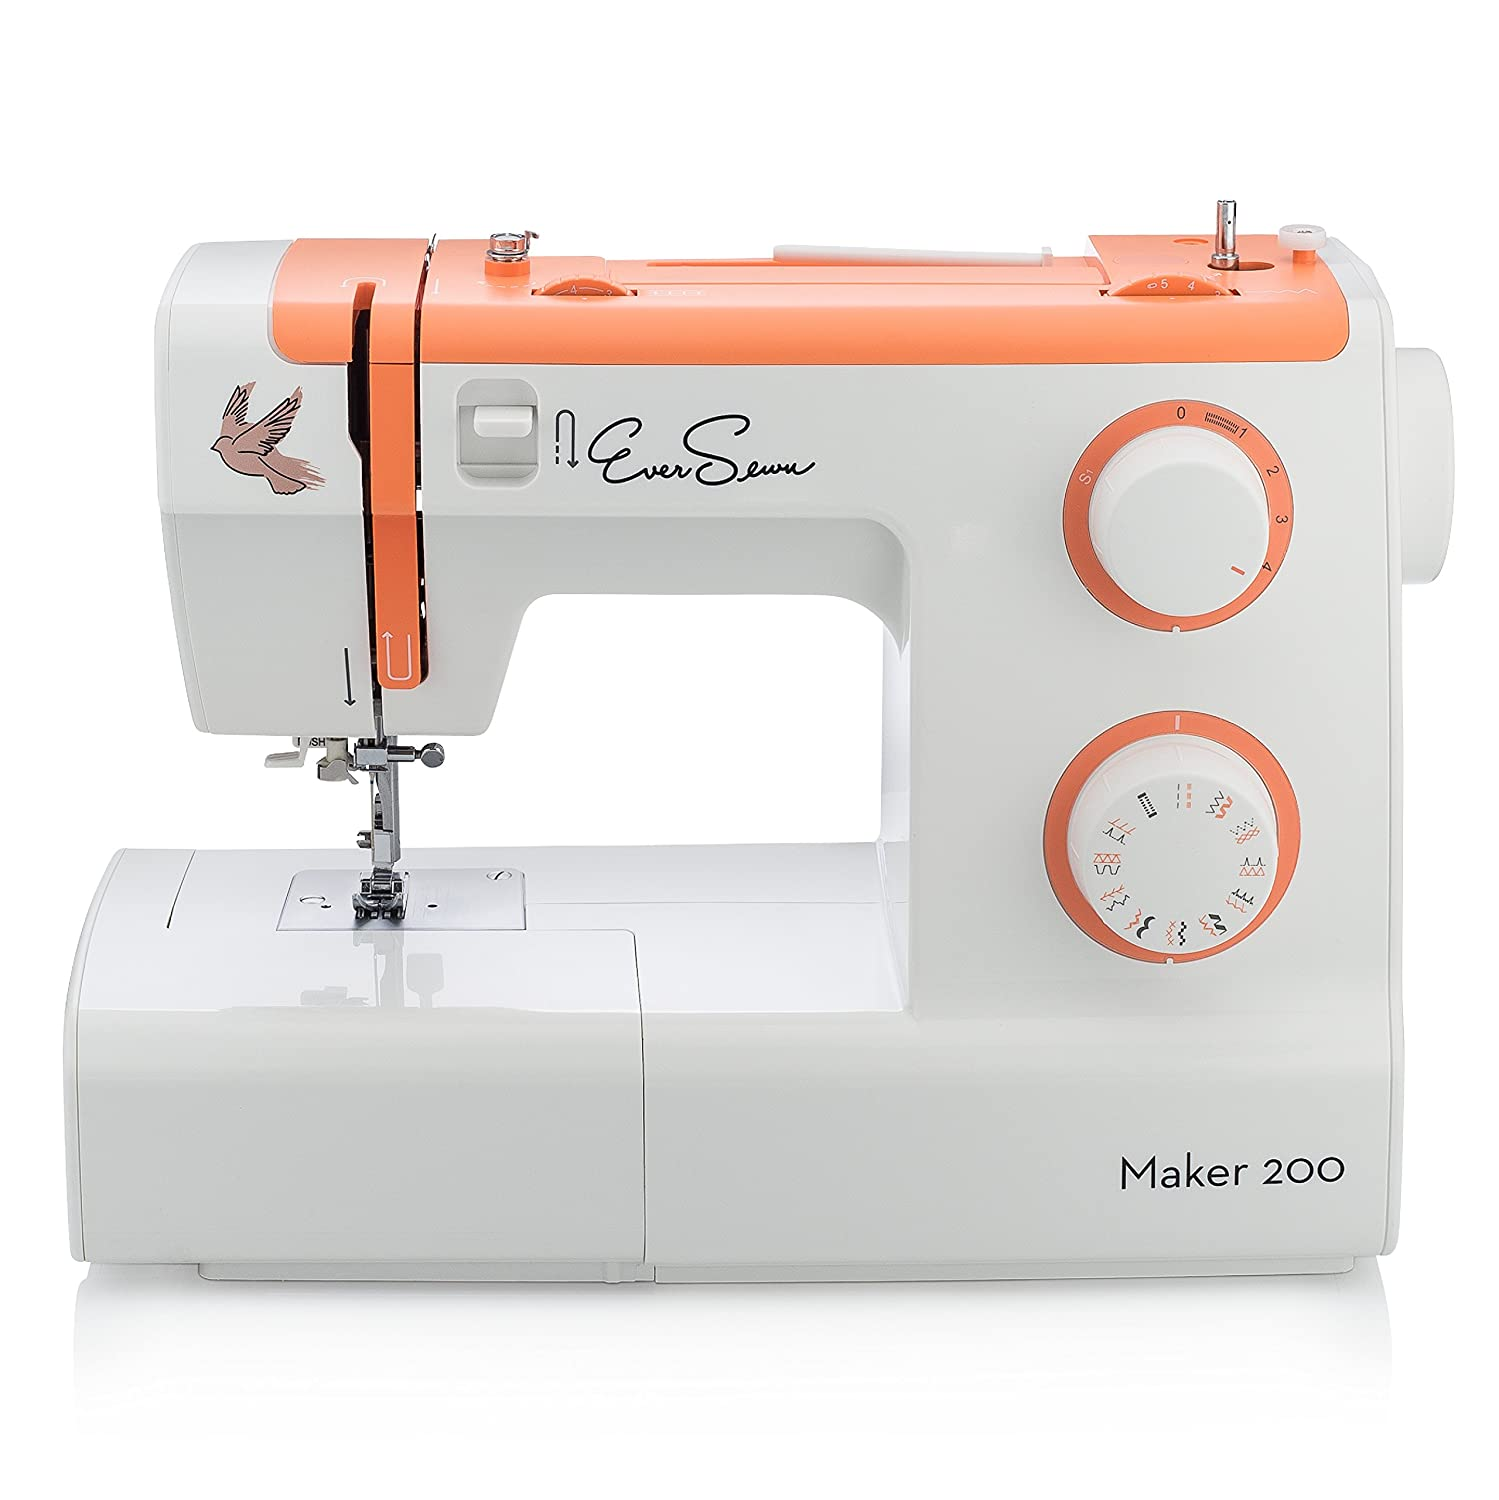 EverSewn Maker 200 - Mechanical Sewing Machine - Professional Grade: 23 Stitches, Stitch Width + Buttonhole - Great for Heavy Sewers Crown Technics